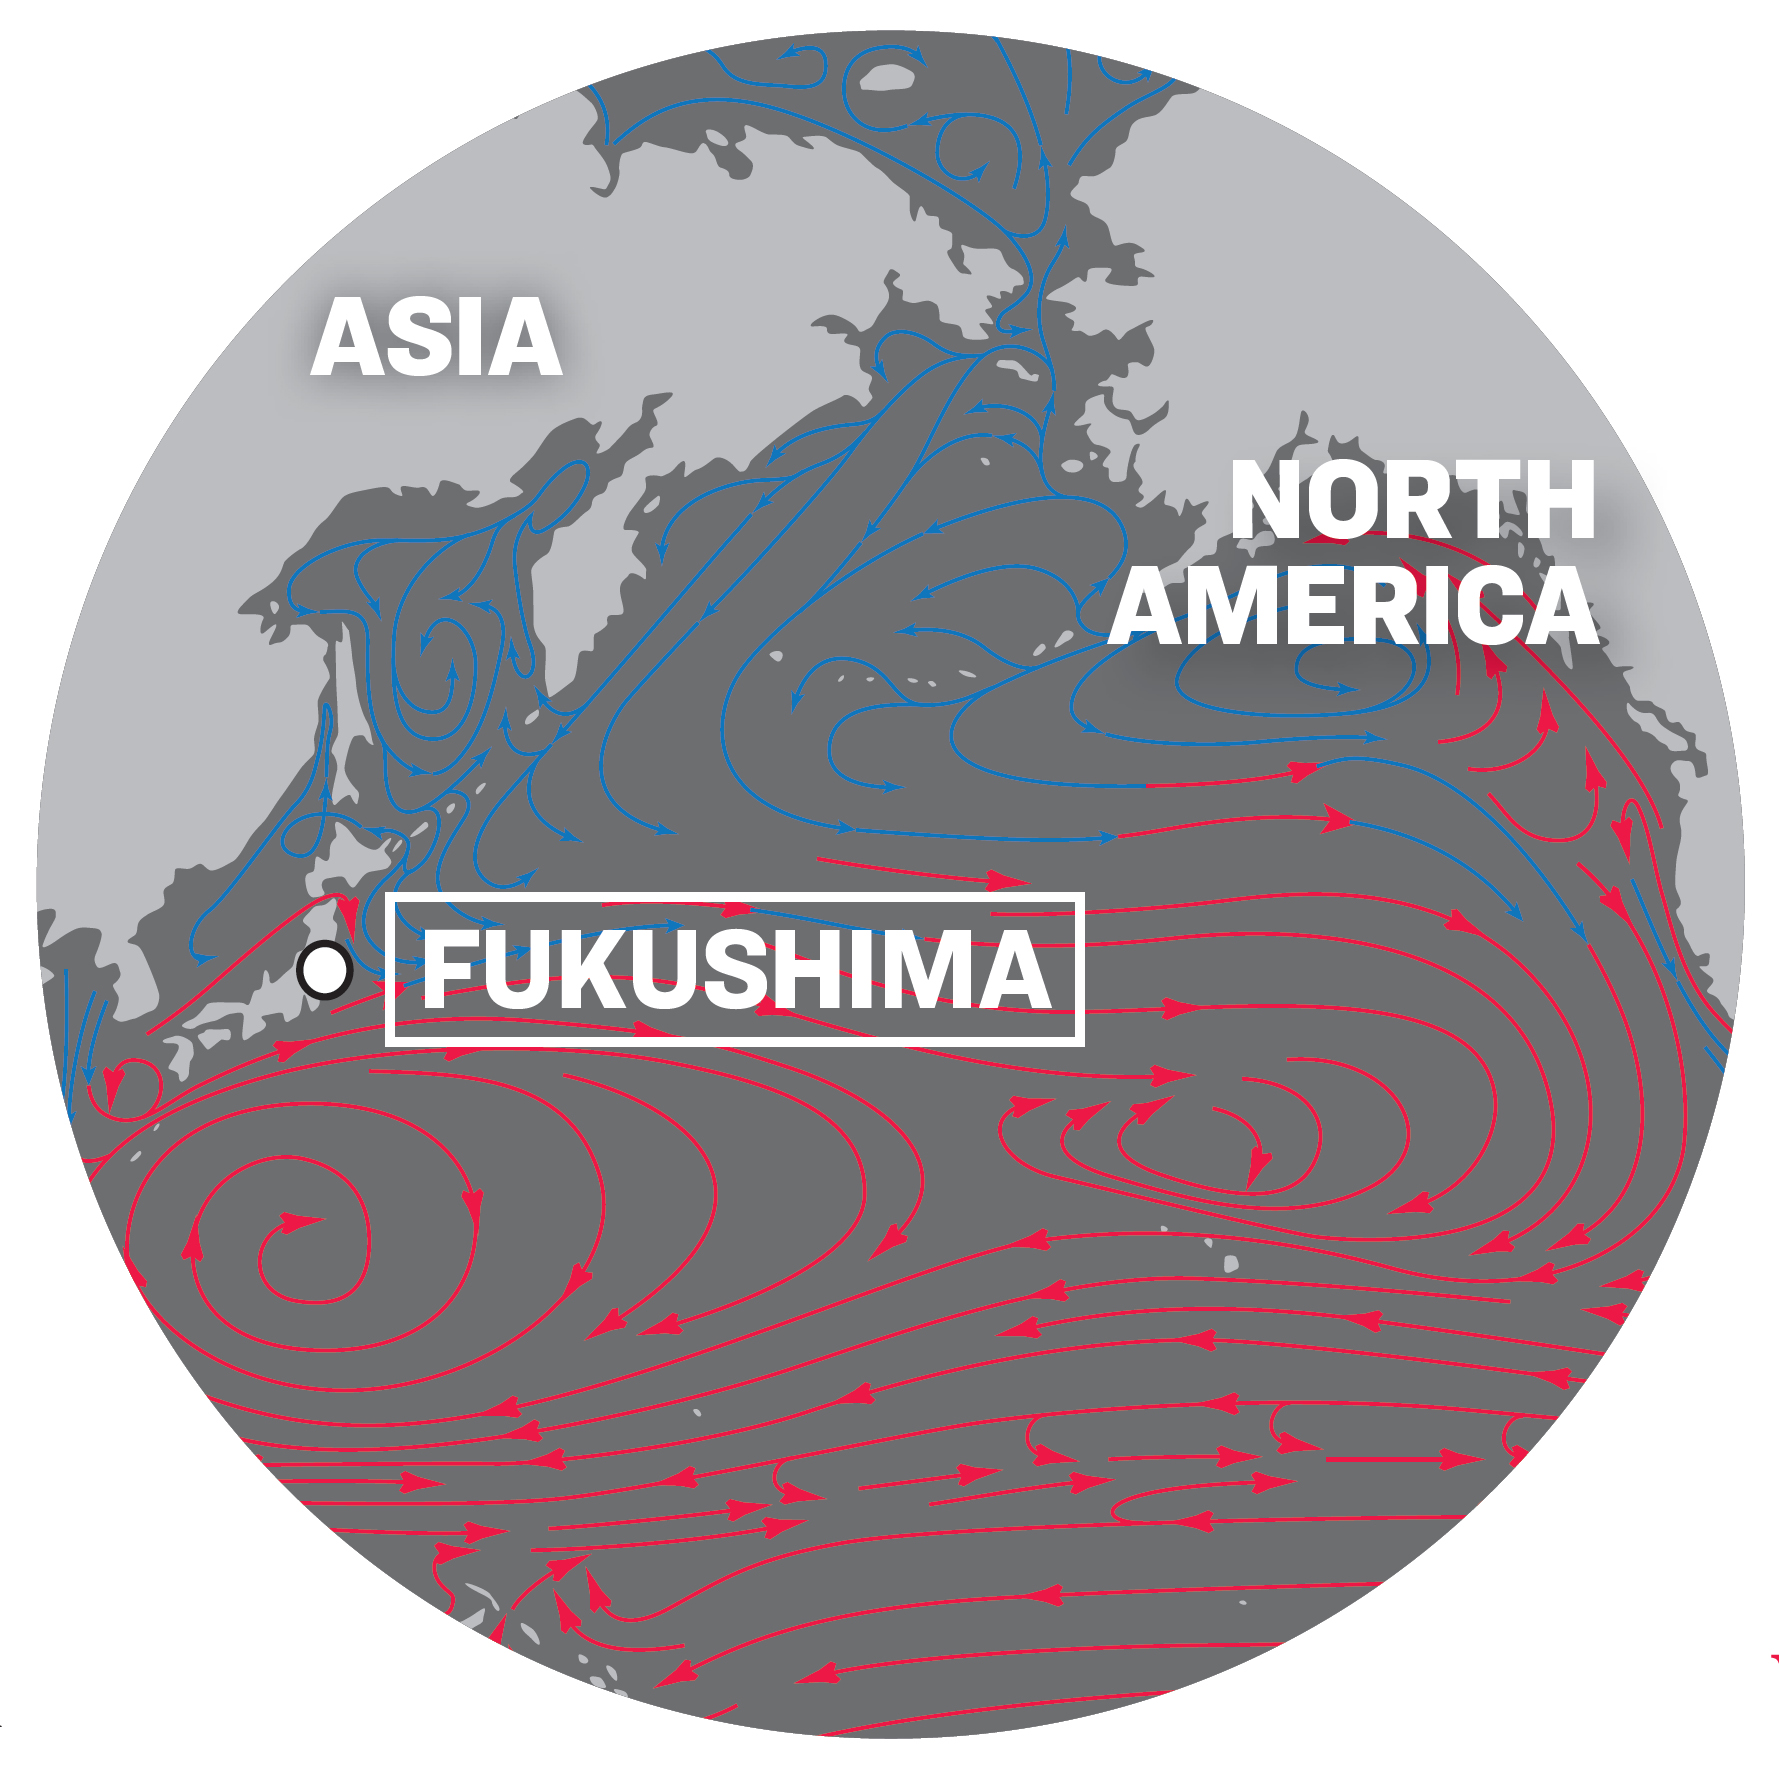 A map showing the location of the Fukushima Daiichi nuclear power plant and water currents in the Pacific Ocean. (SHUTTERSTOCK (BASE MAP); THE EPOCH TIMES (DESIGN))